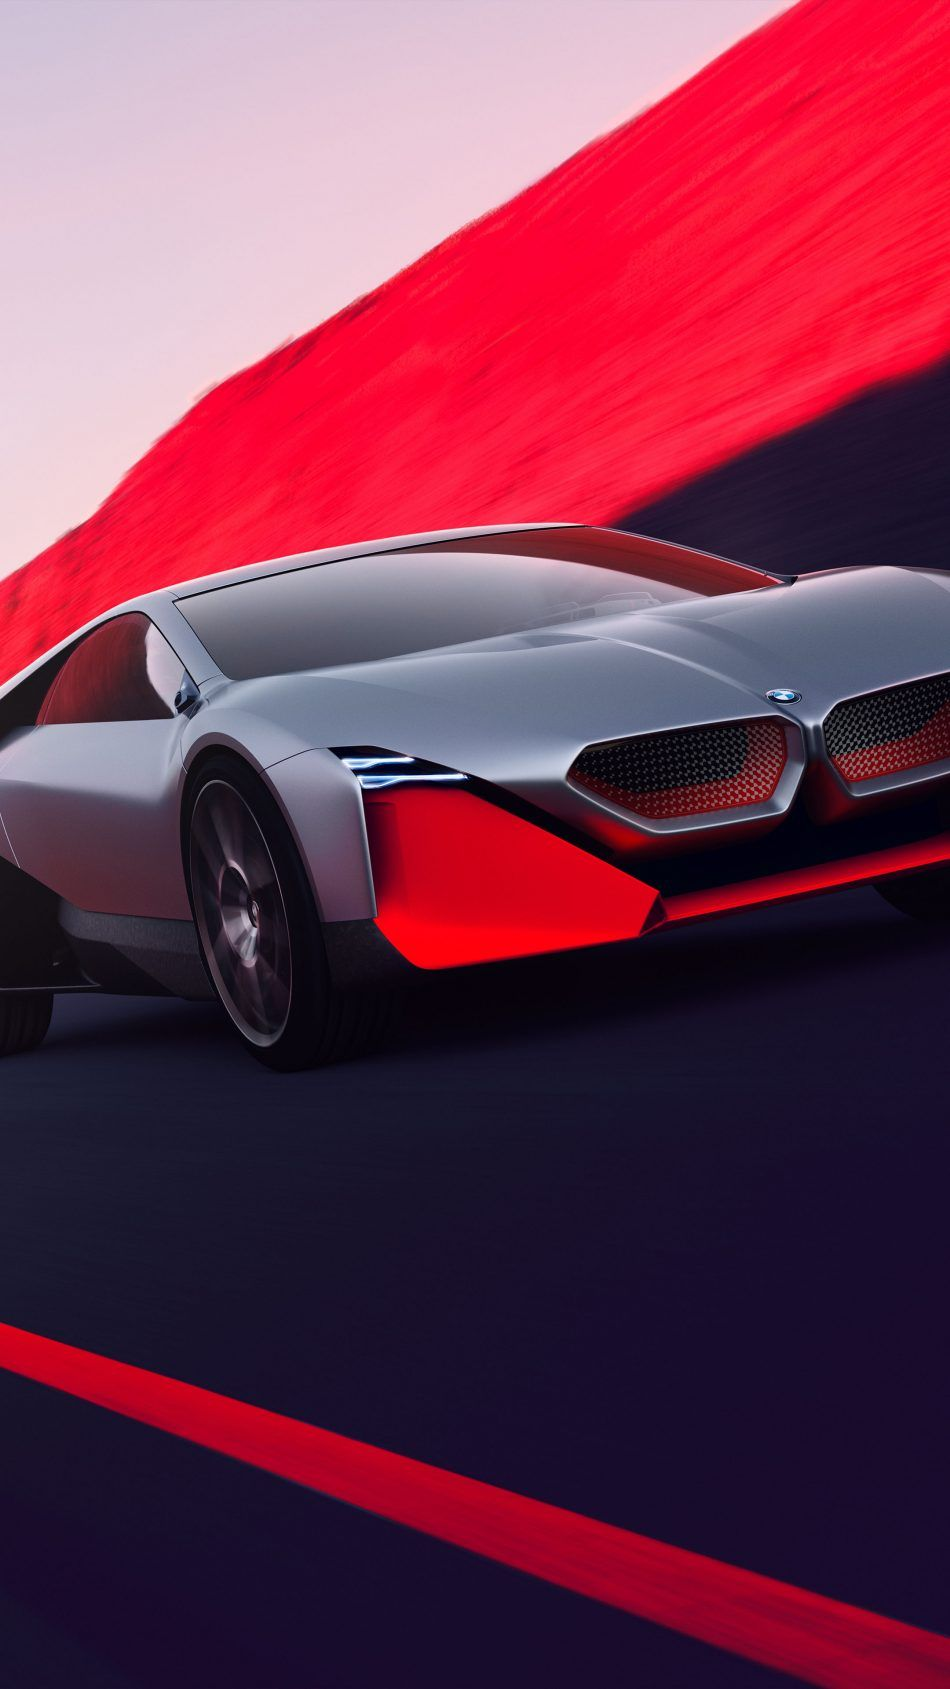 Bmw Vision M Next Concept Car Concept Cars Sports Car Wallpaper